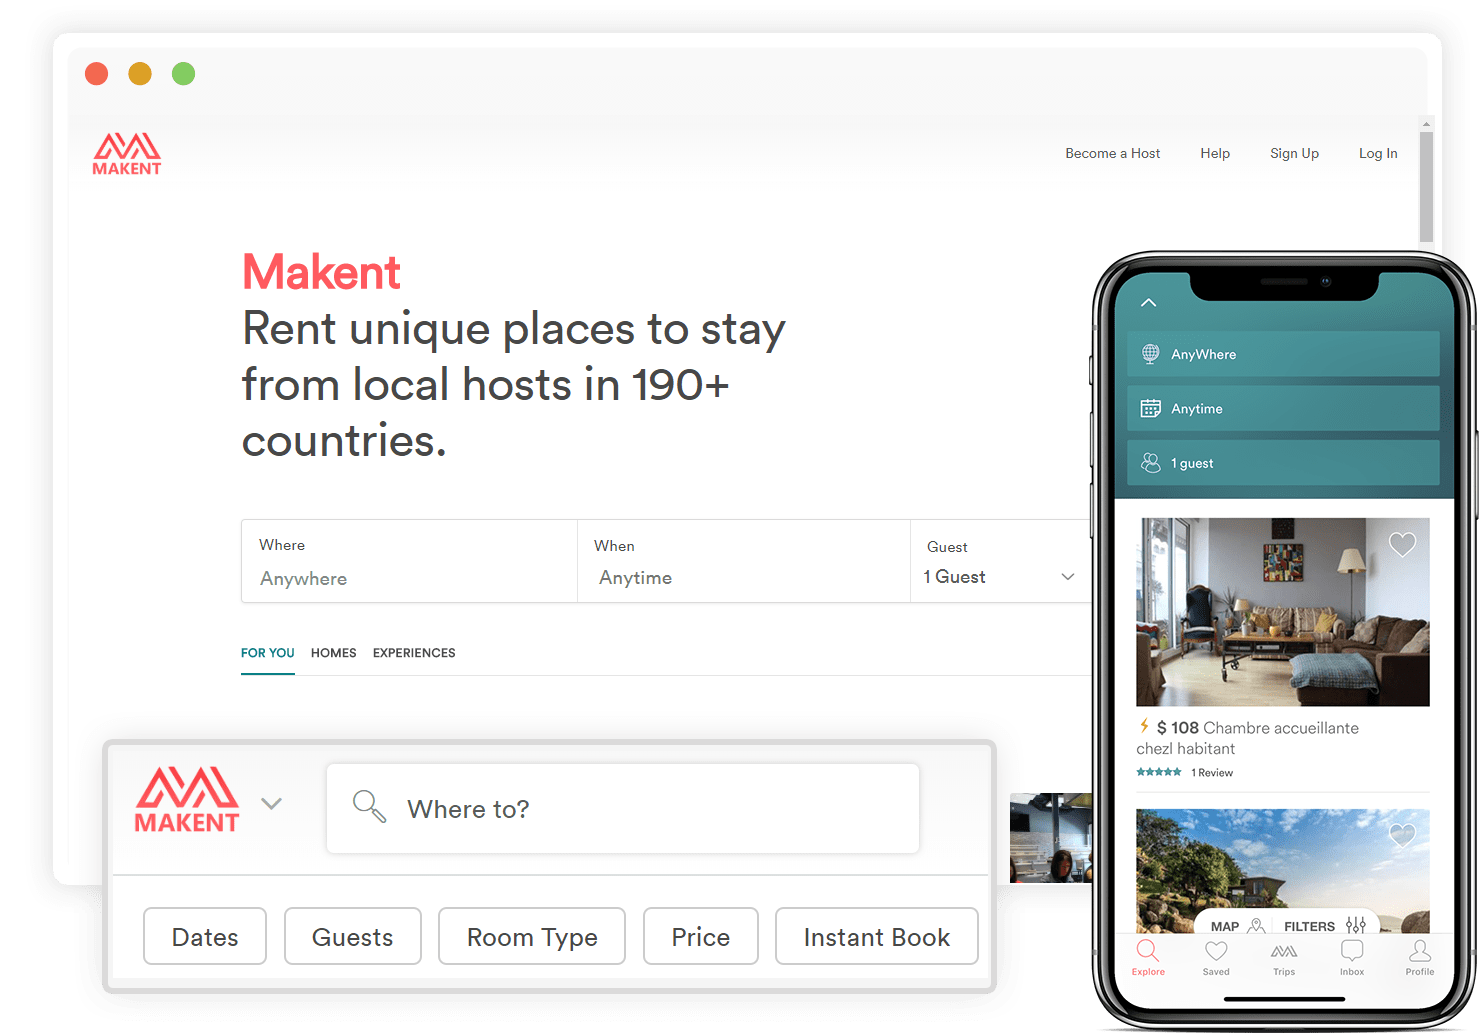 https://www.trioangle.com/airbnb-clone/ website snapshot